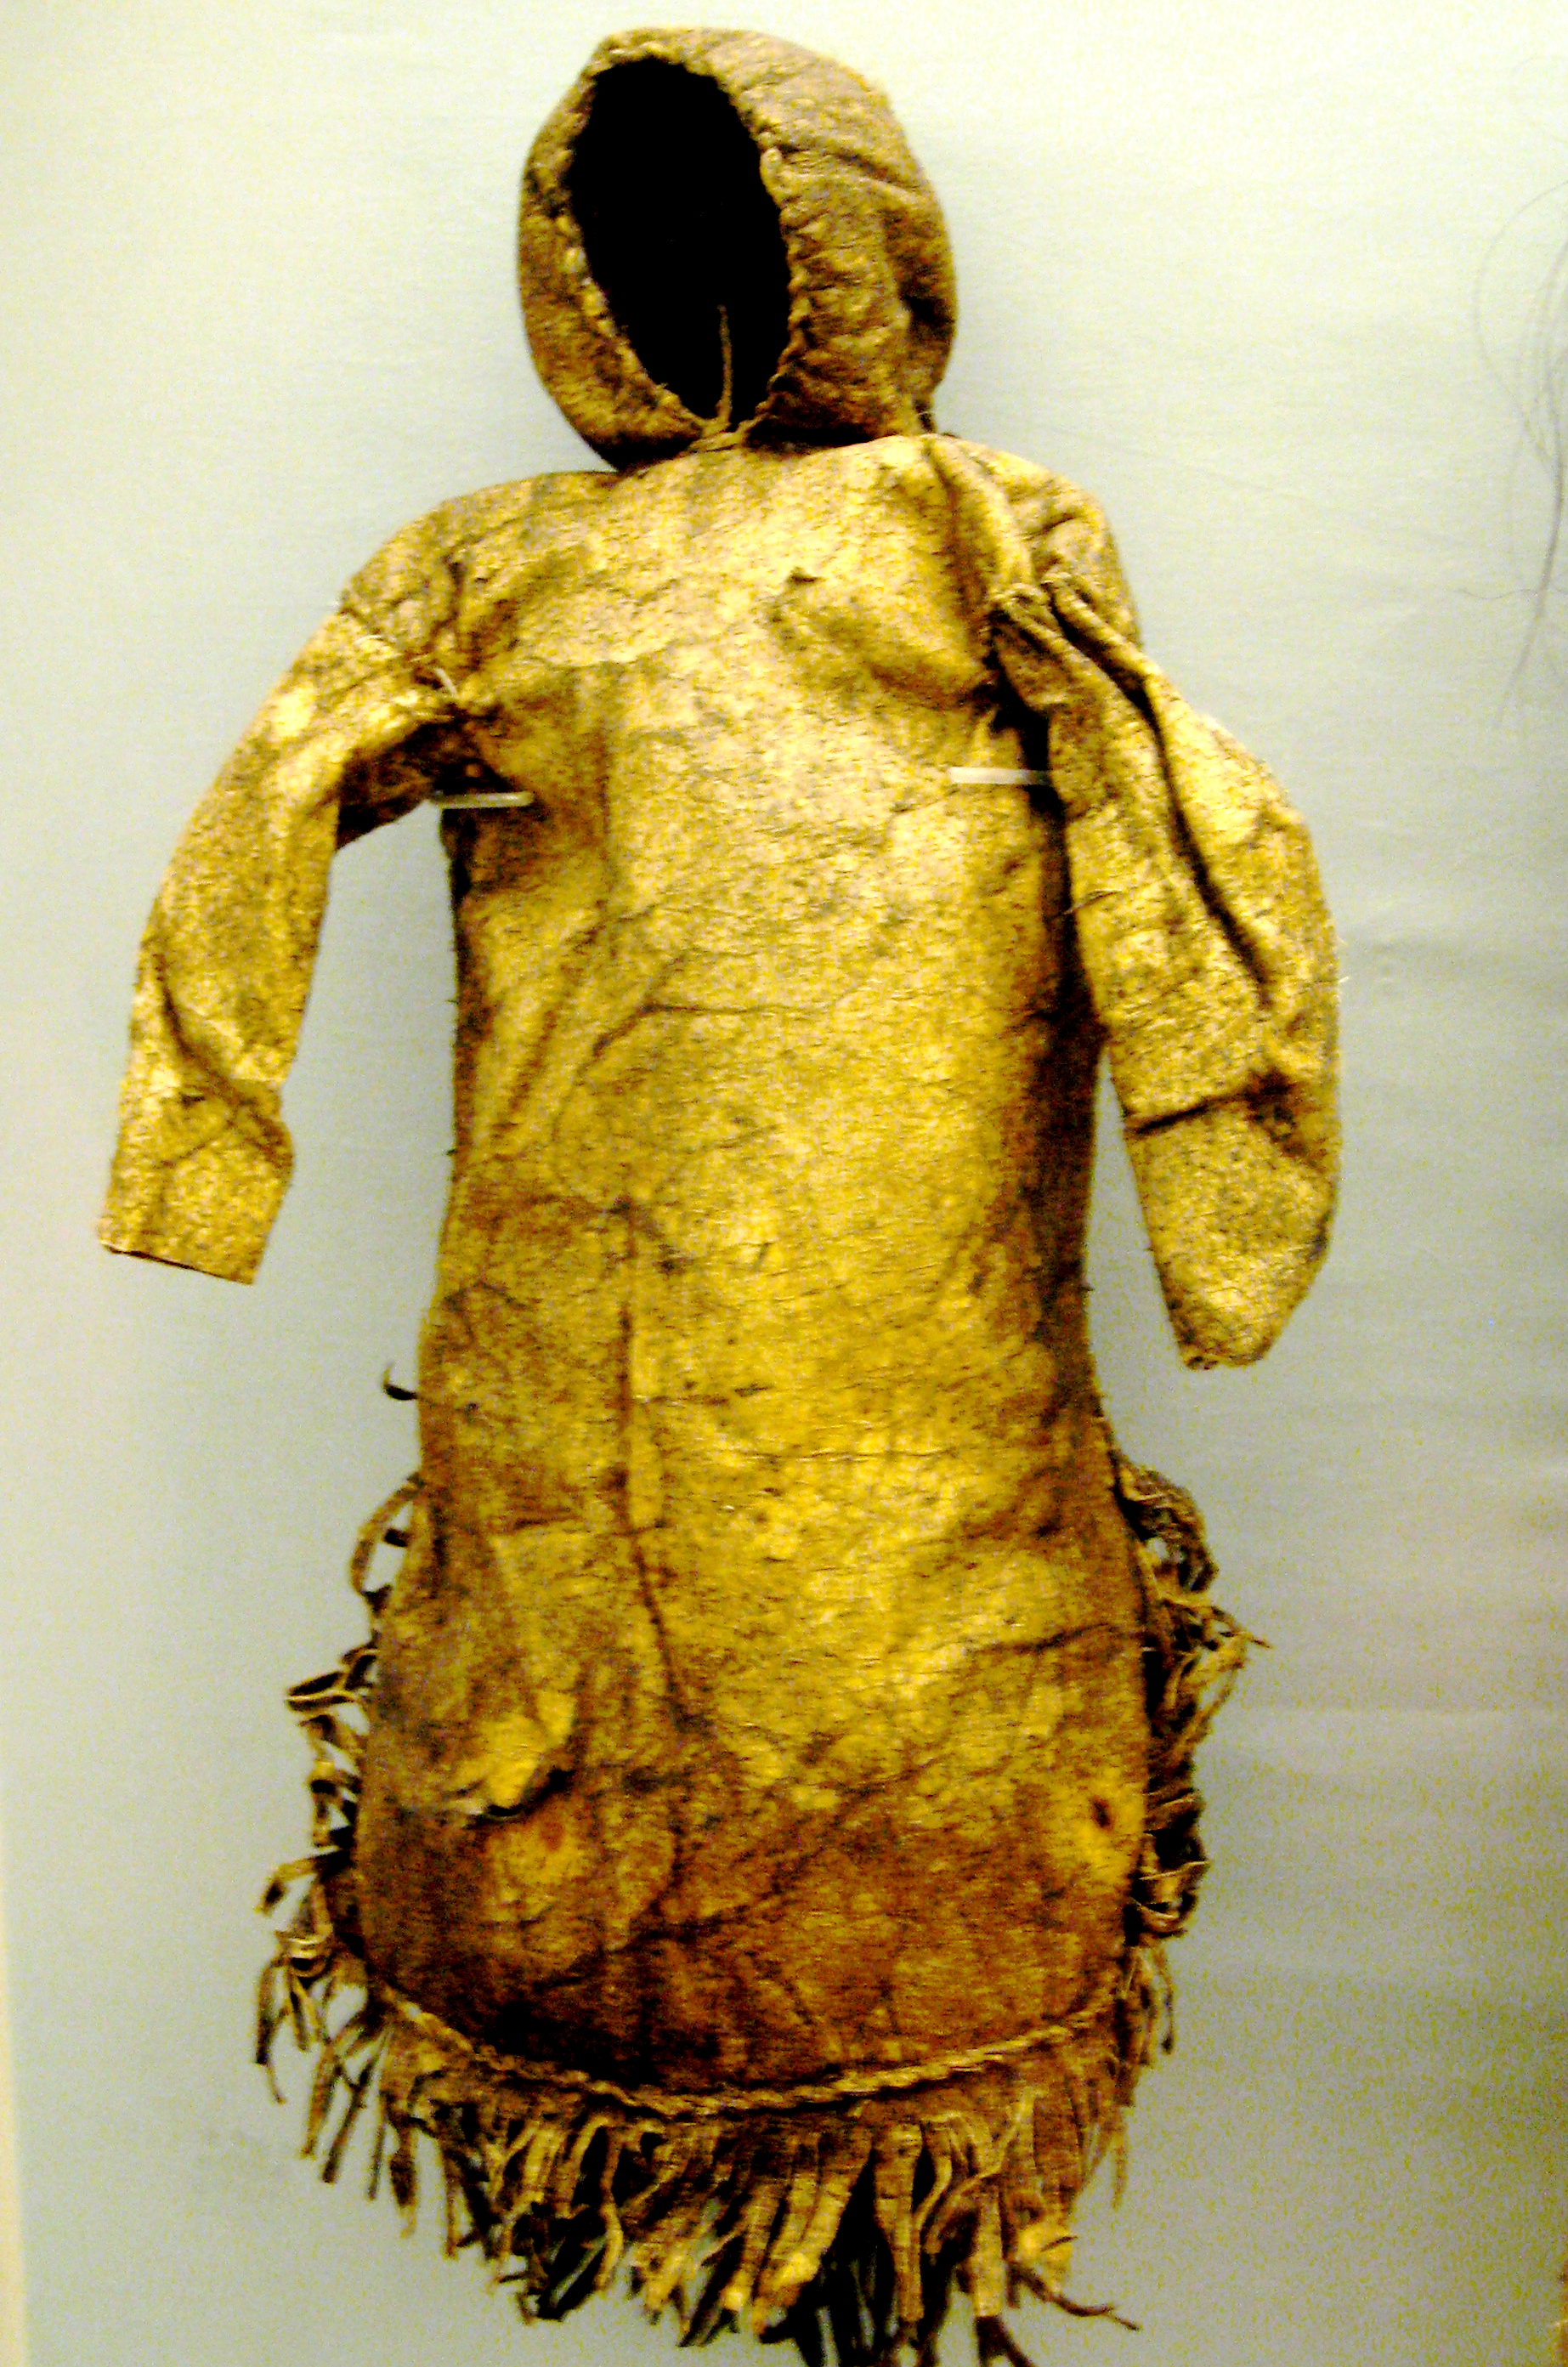 http://upload.wikimedia.org/wikipedia/commons/1/1c/Inuit_doll.JPG